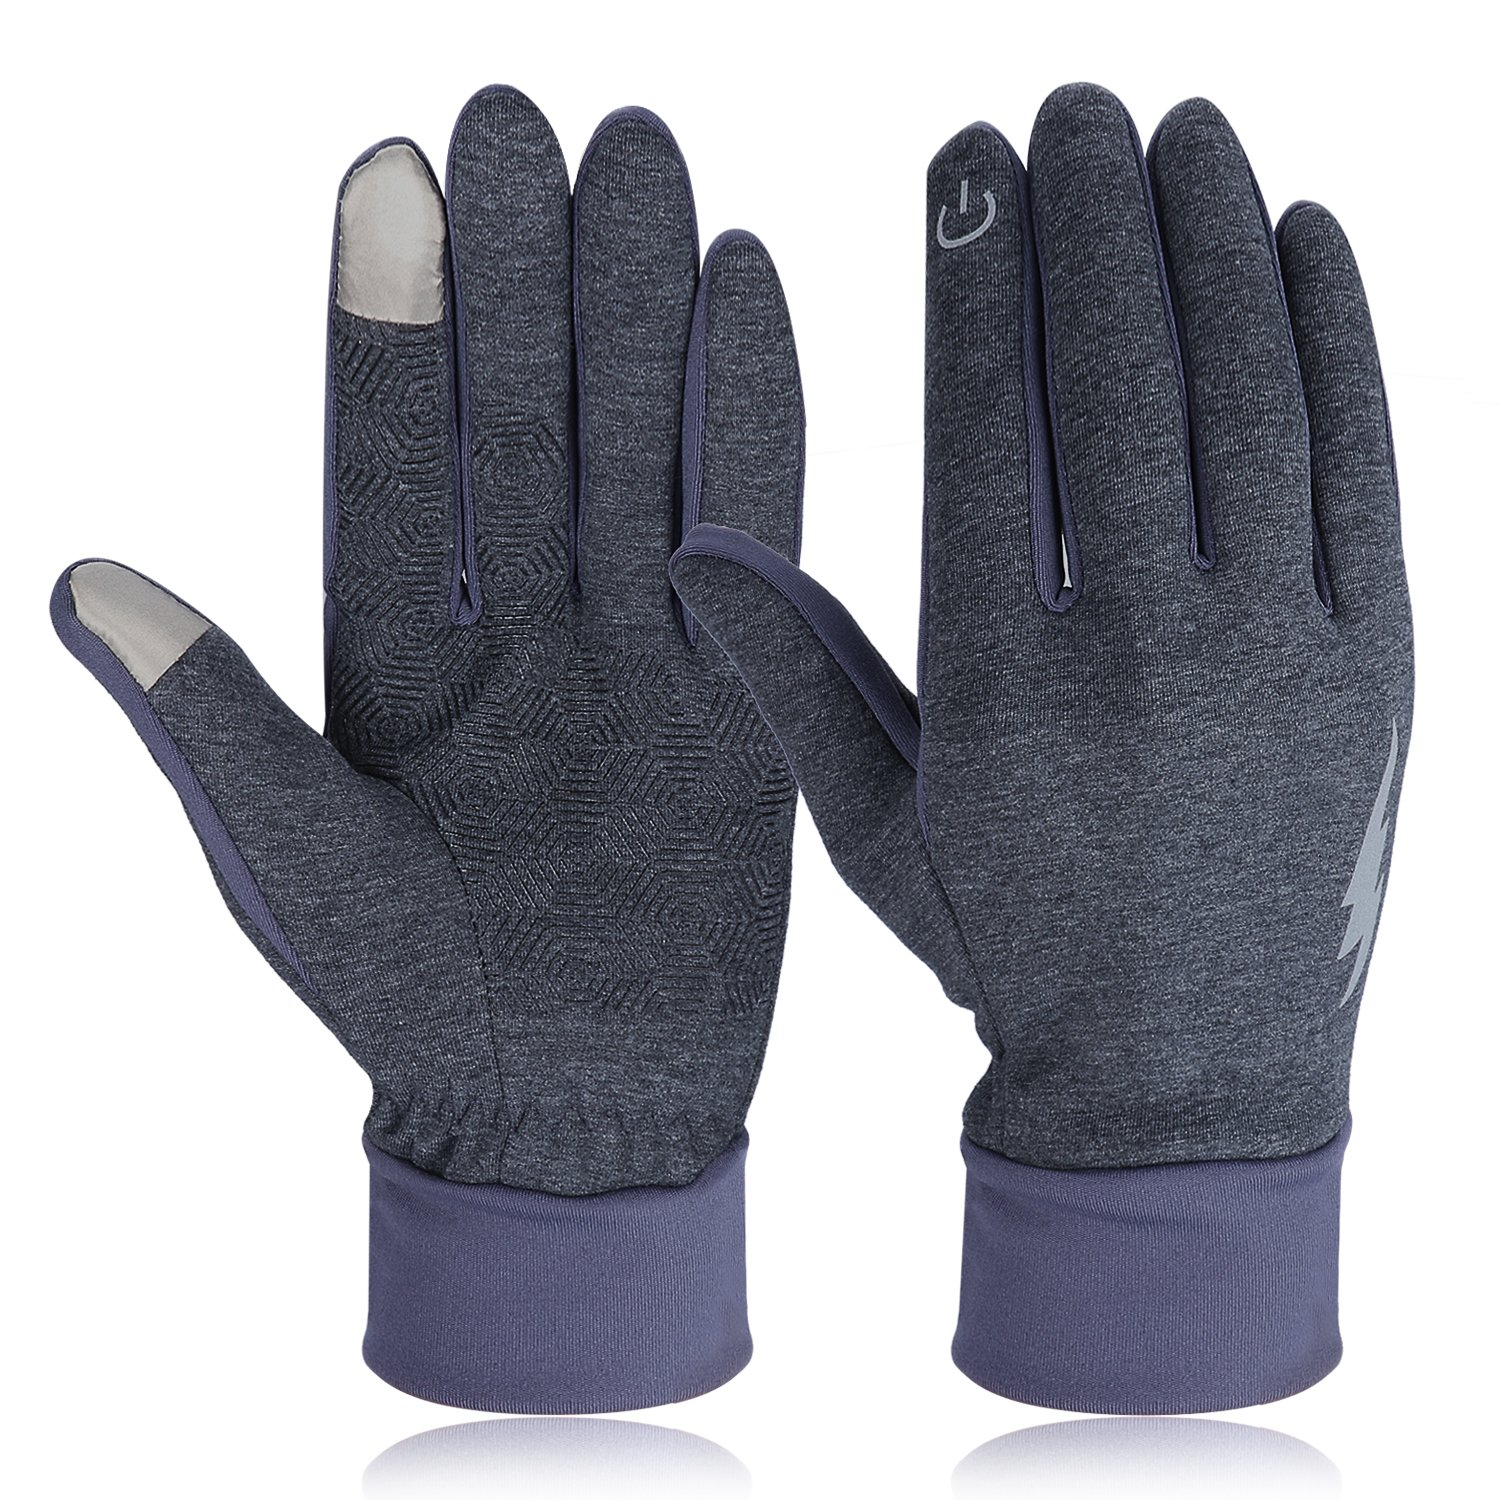 Touch Screen Gloves, HiCool Winter Gloves Driving Cycling Gloves Work Gloves for Men and Women